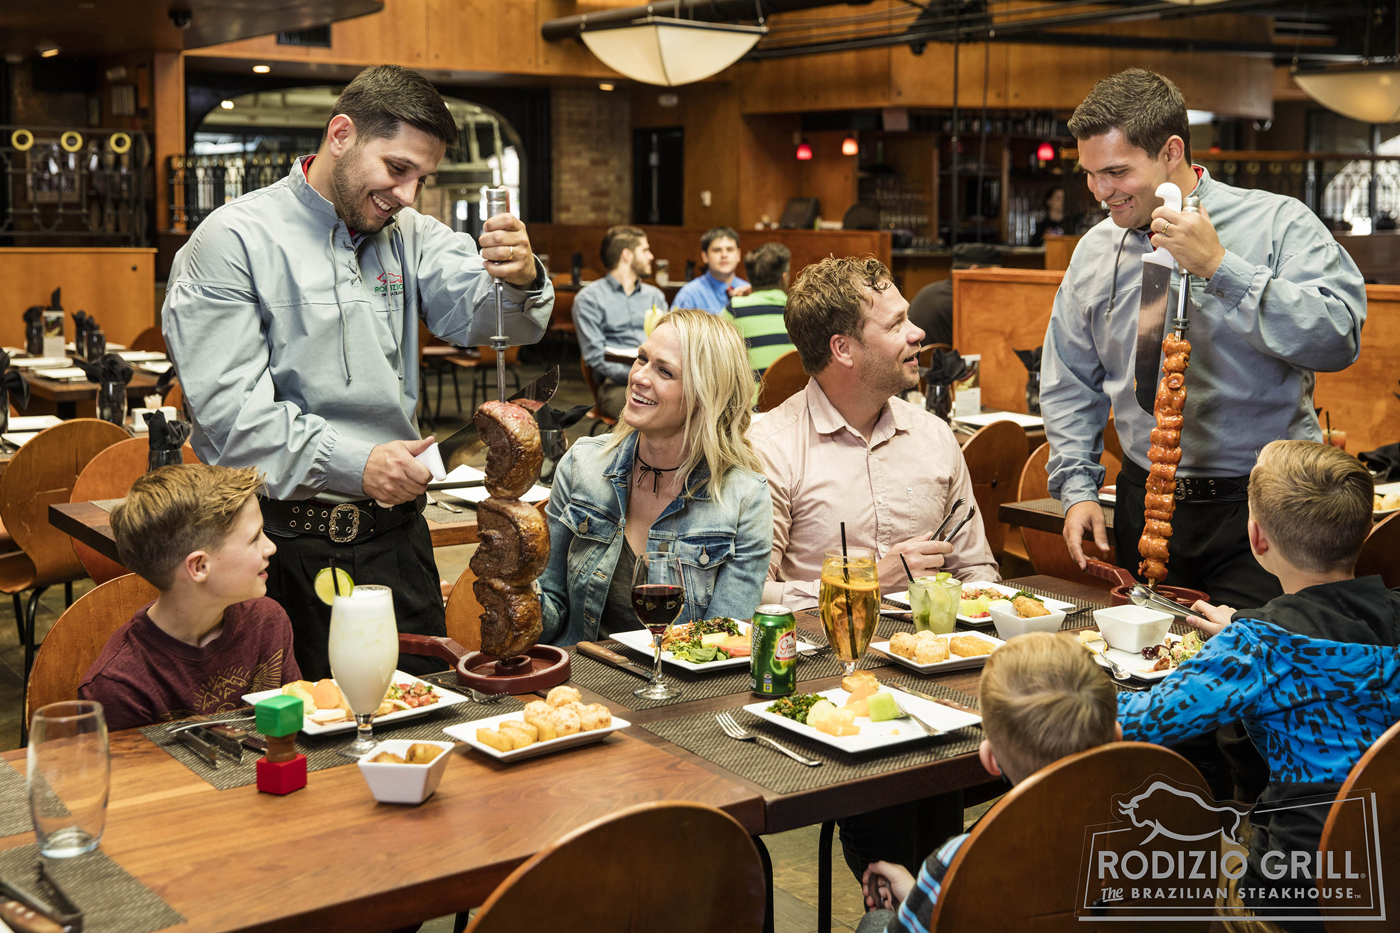 photograph relating to Rodizio Grill Coupons Printable identified as - Rodizio Grill - $25 For $50 Significance Of Good